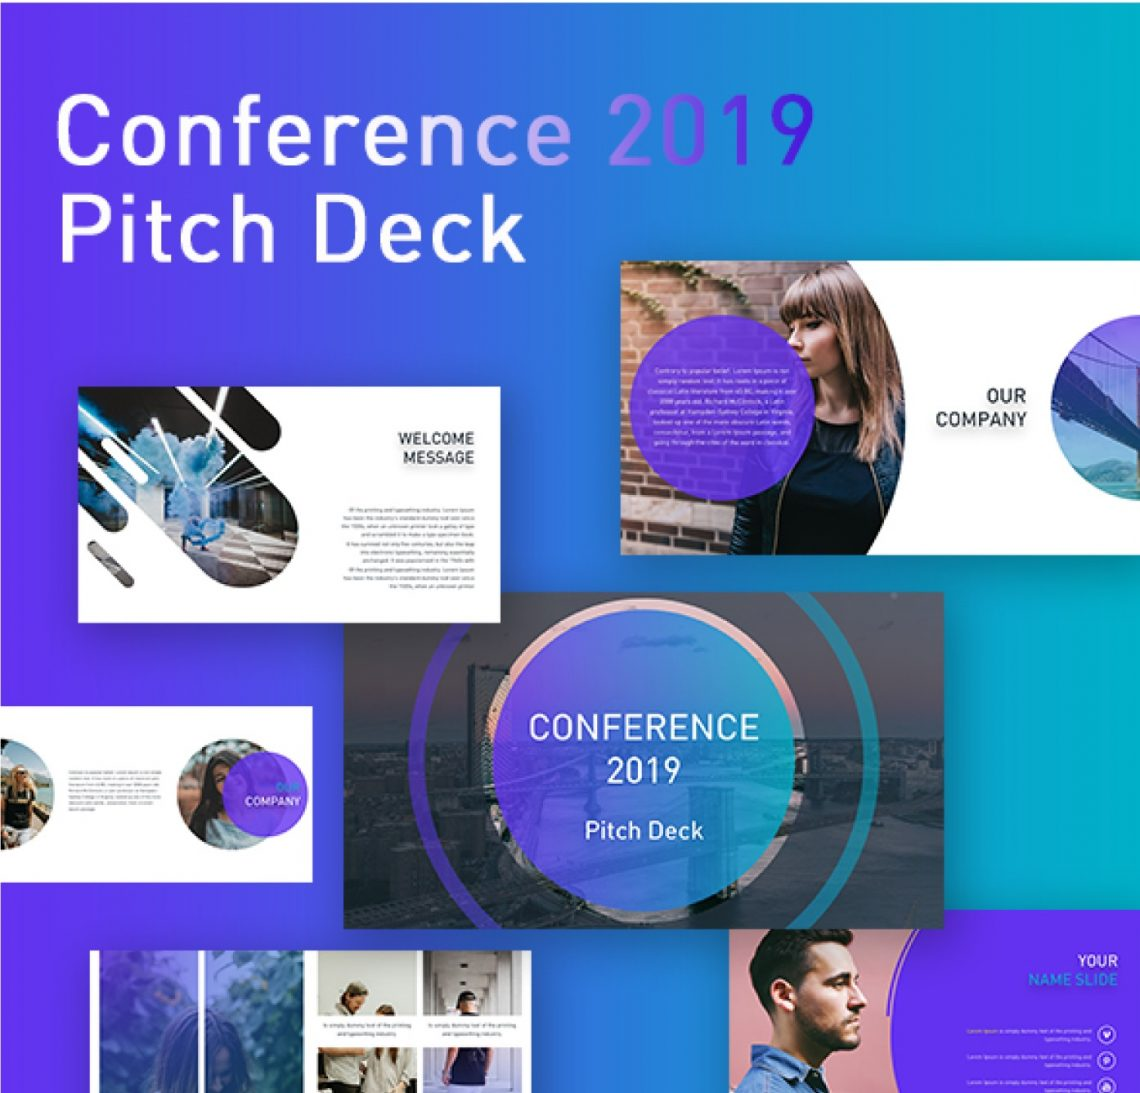 CONFERENCE - Free Powerpoint Pitch Deck Template For Free.